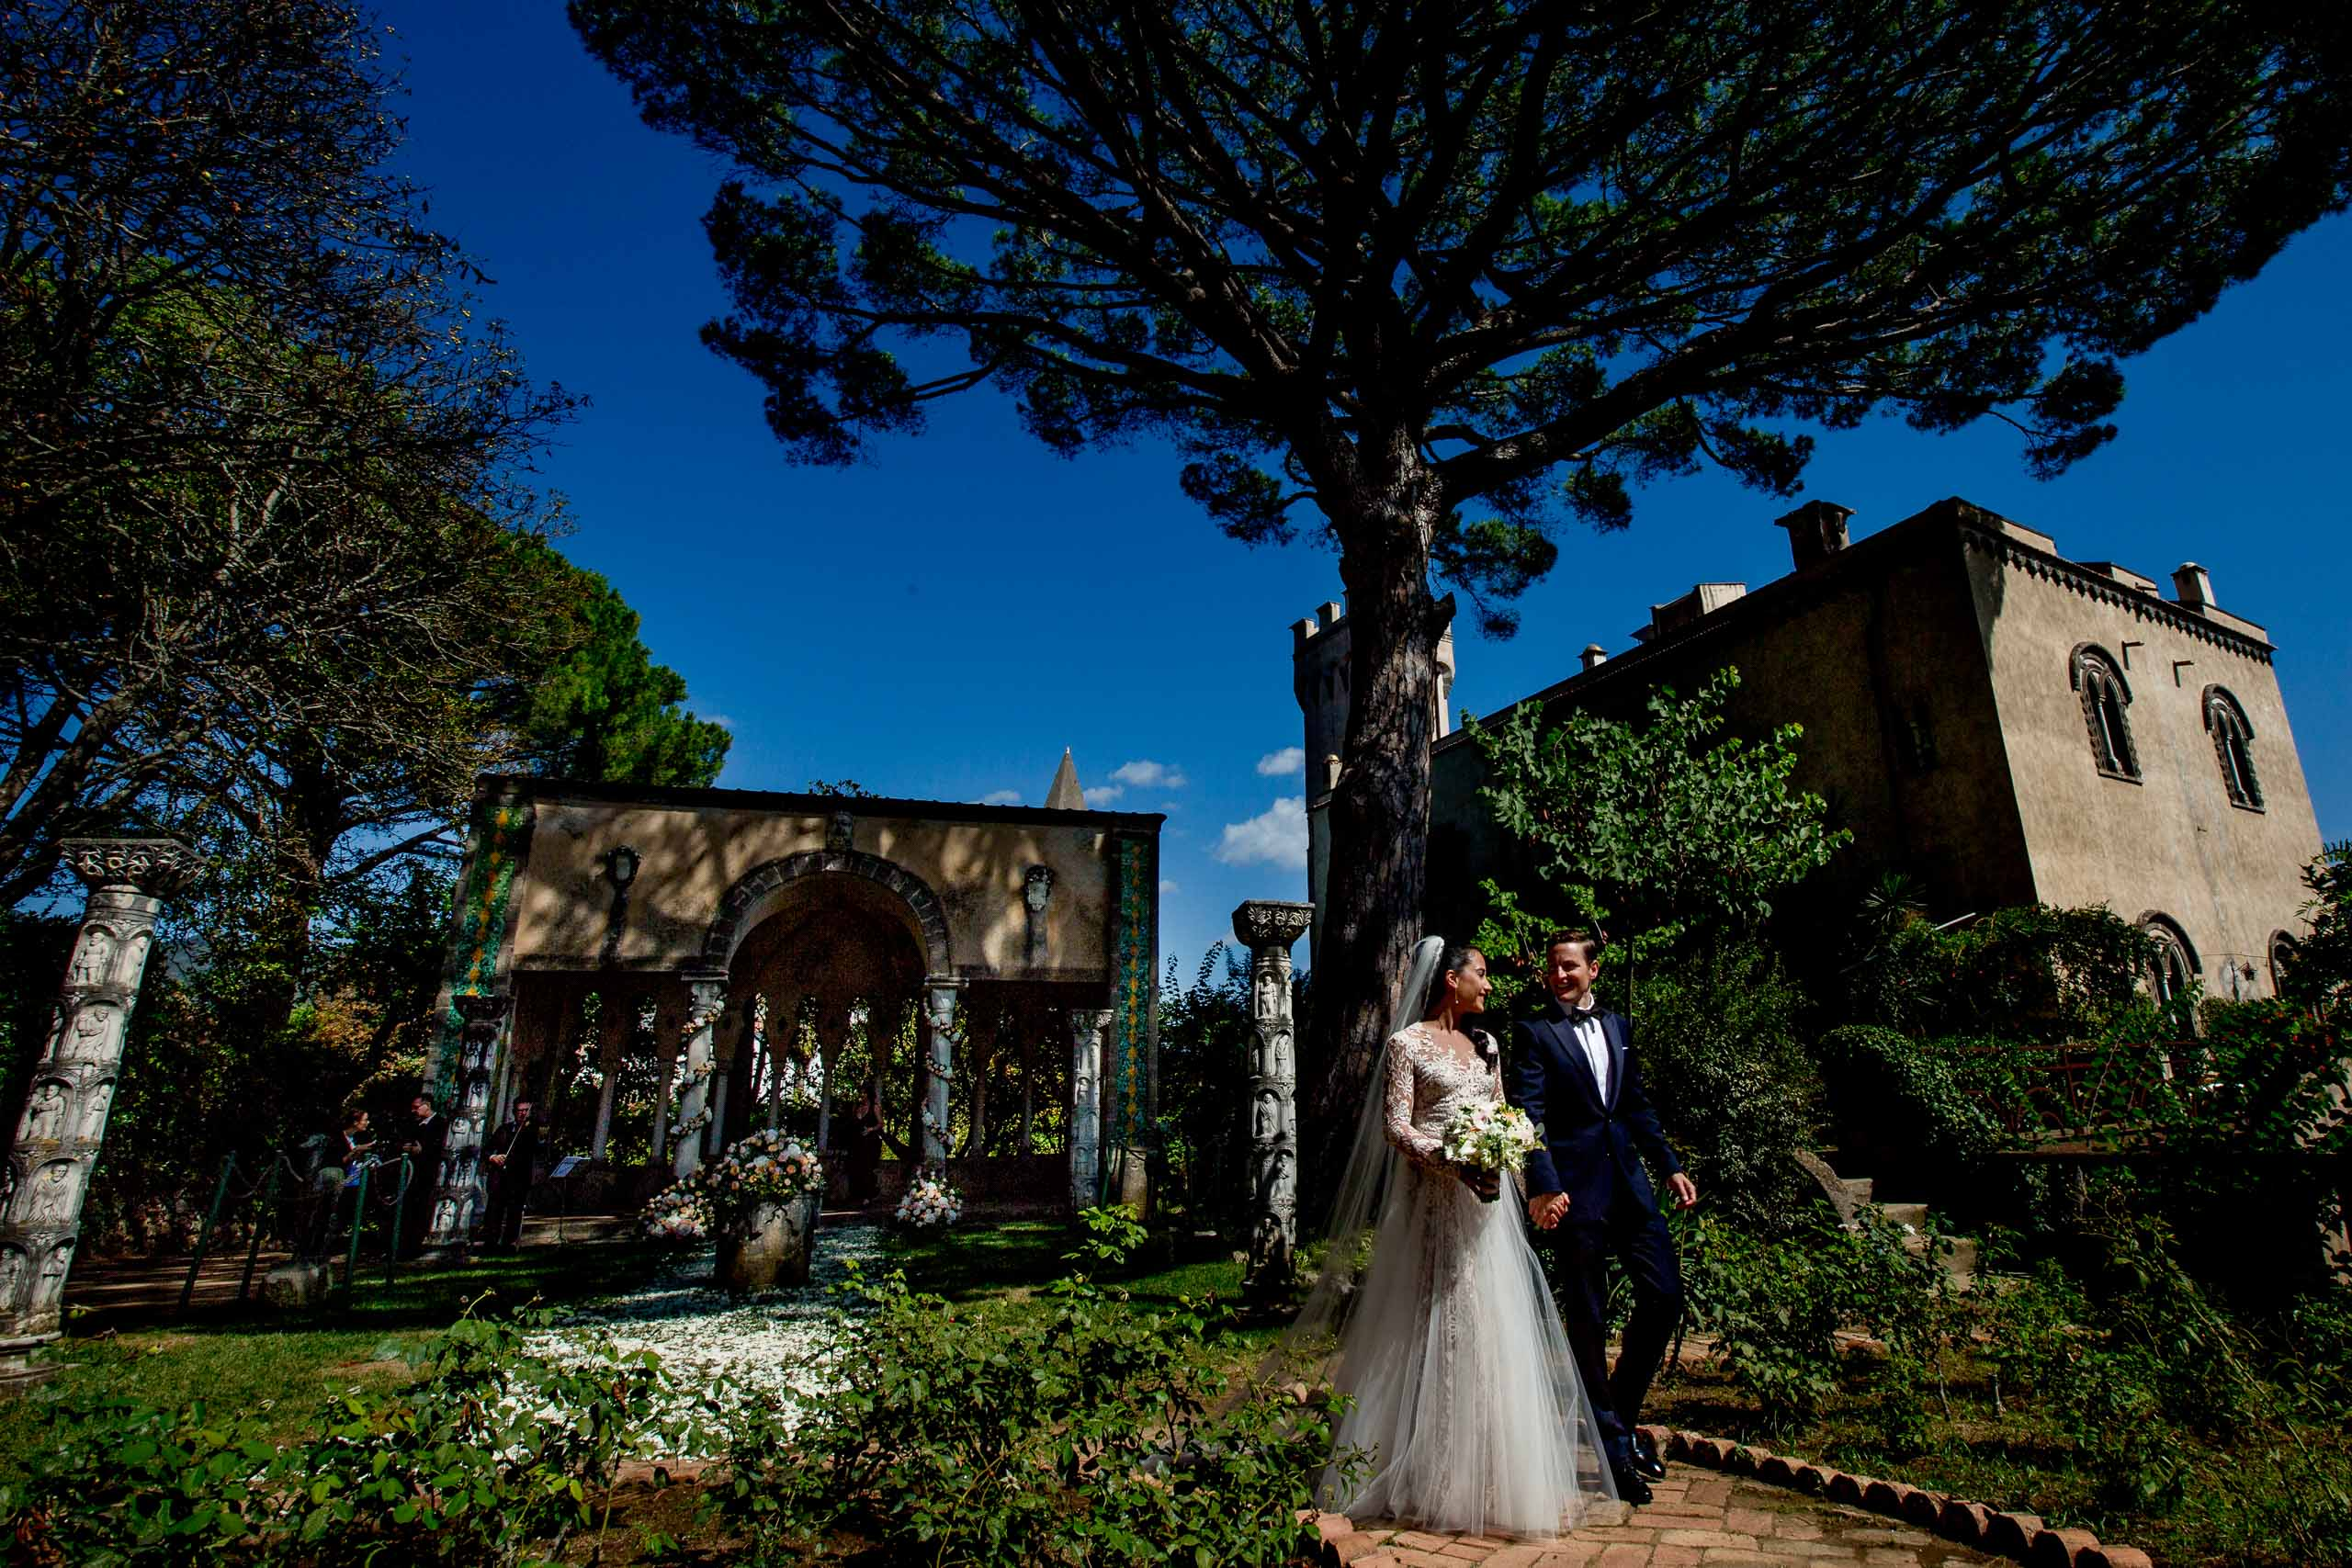 Gorgeous bride and groom walking through Villa Cimbrone garden just after their ceremony for their Ravello elopement along the Amafi Coast in Italy